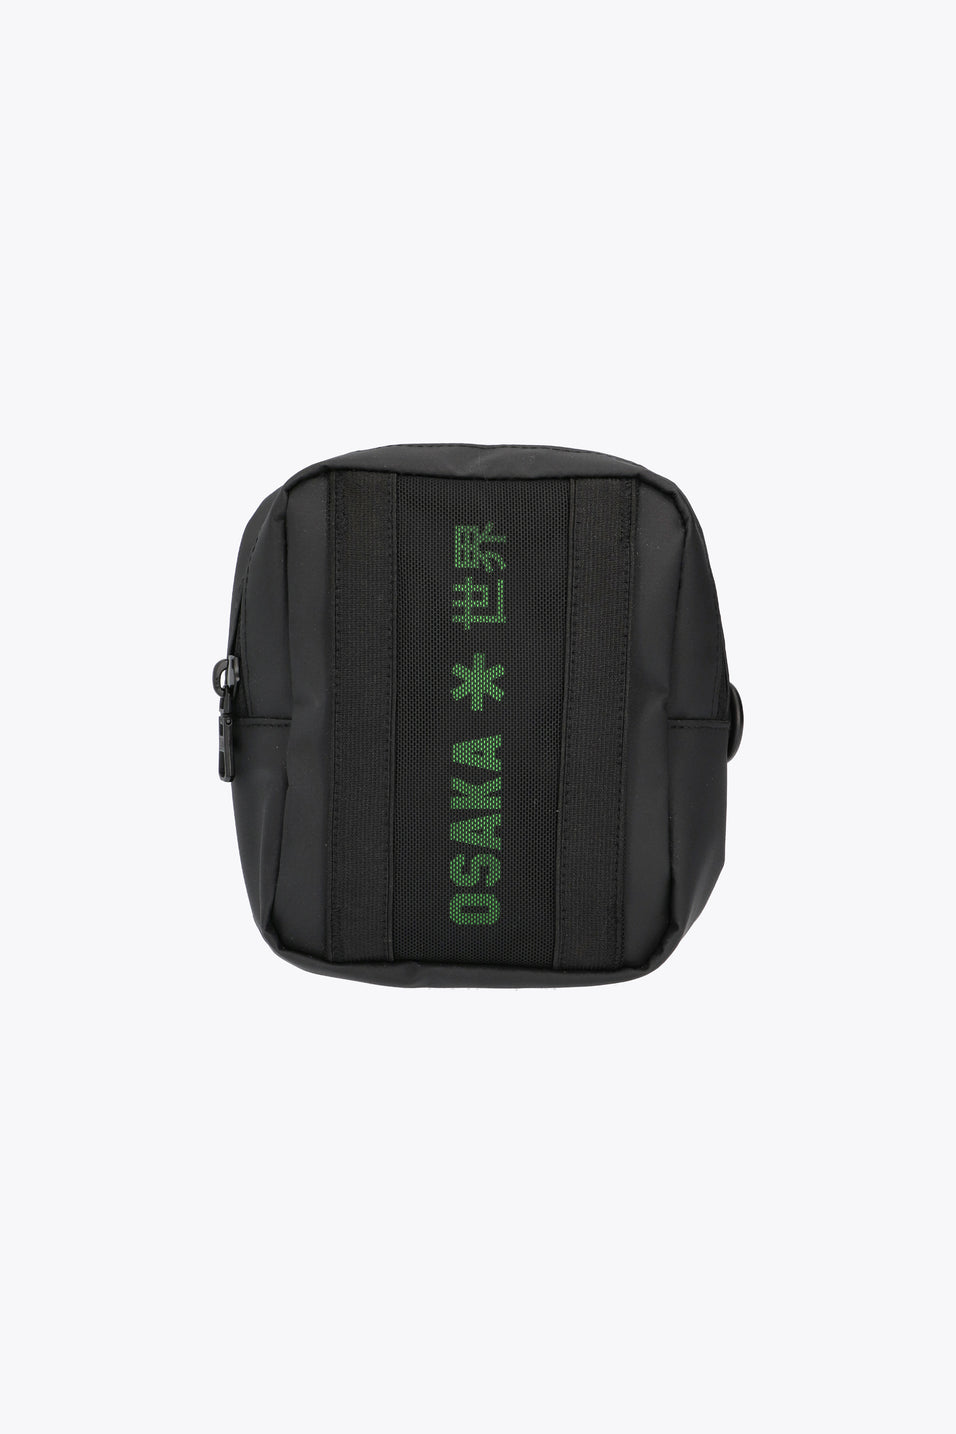 Pro Tour Bum Bag - Iconic Black